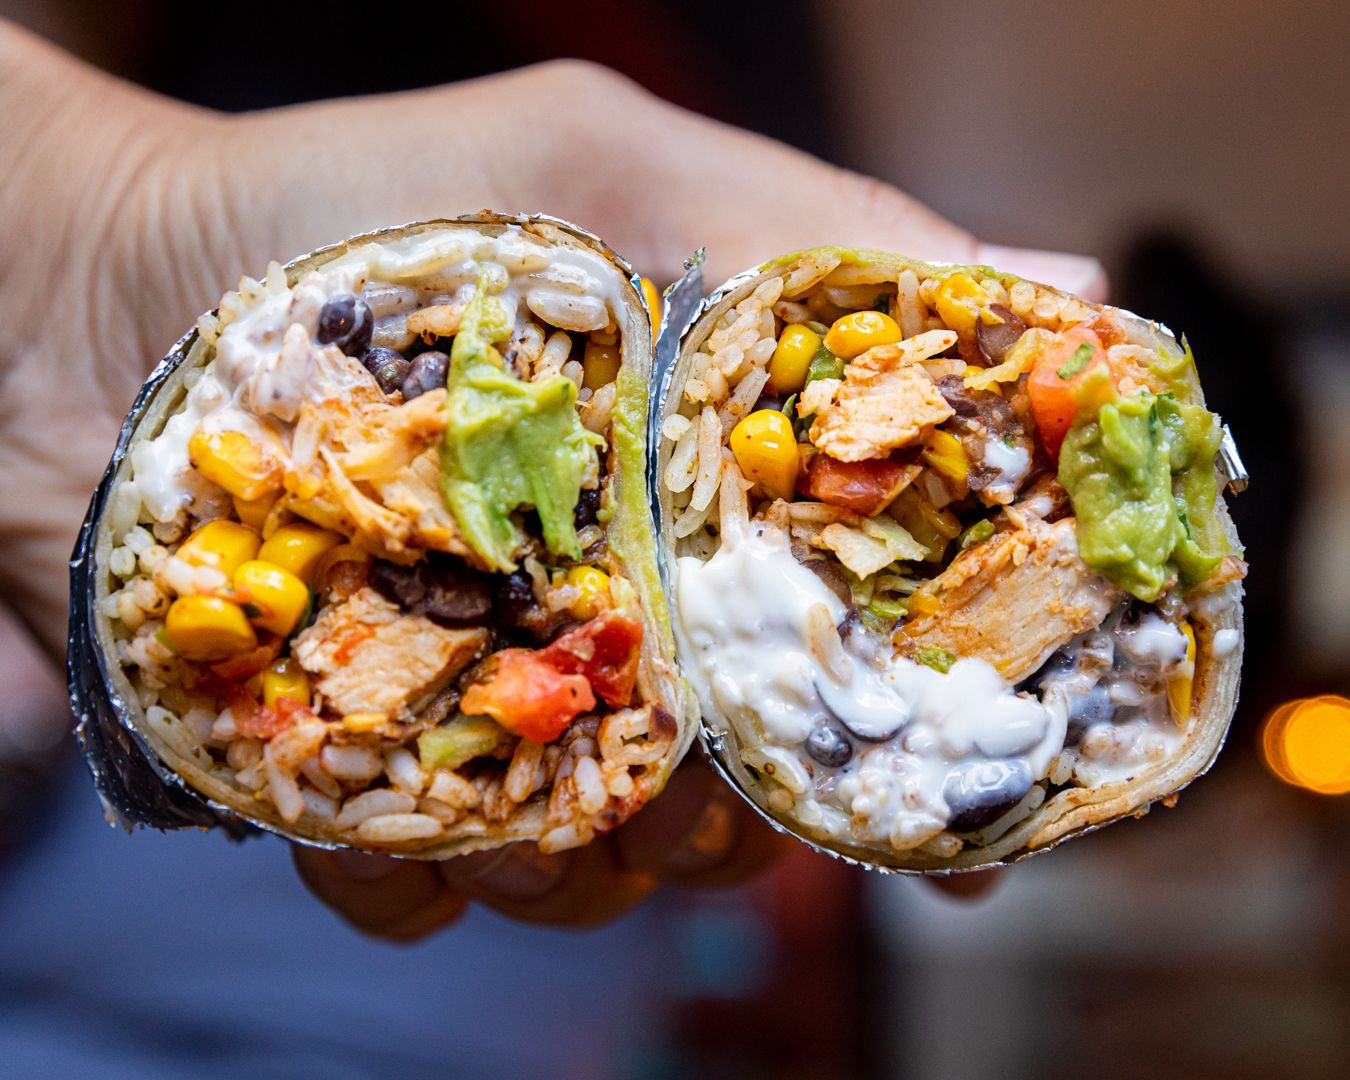 The 14 Most Underrated Chain Restaurants And What You Should Order When You Go